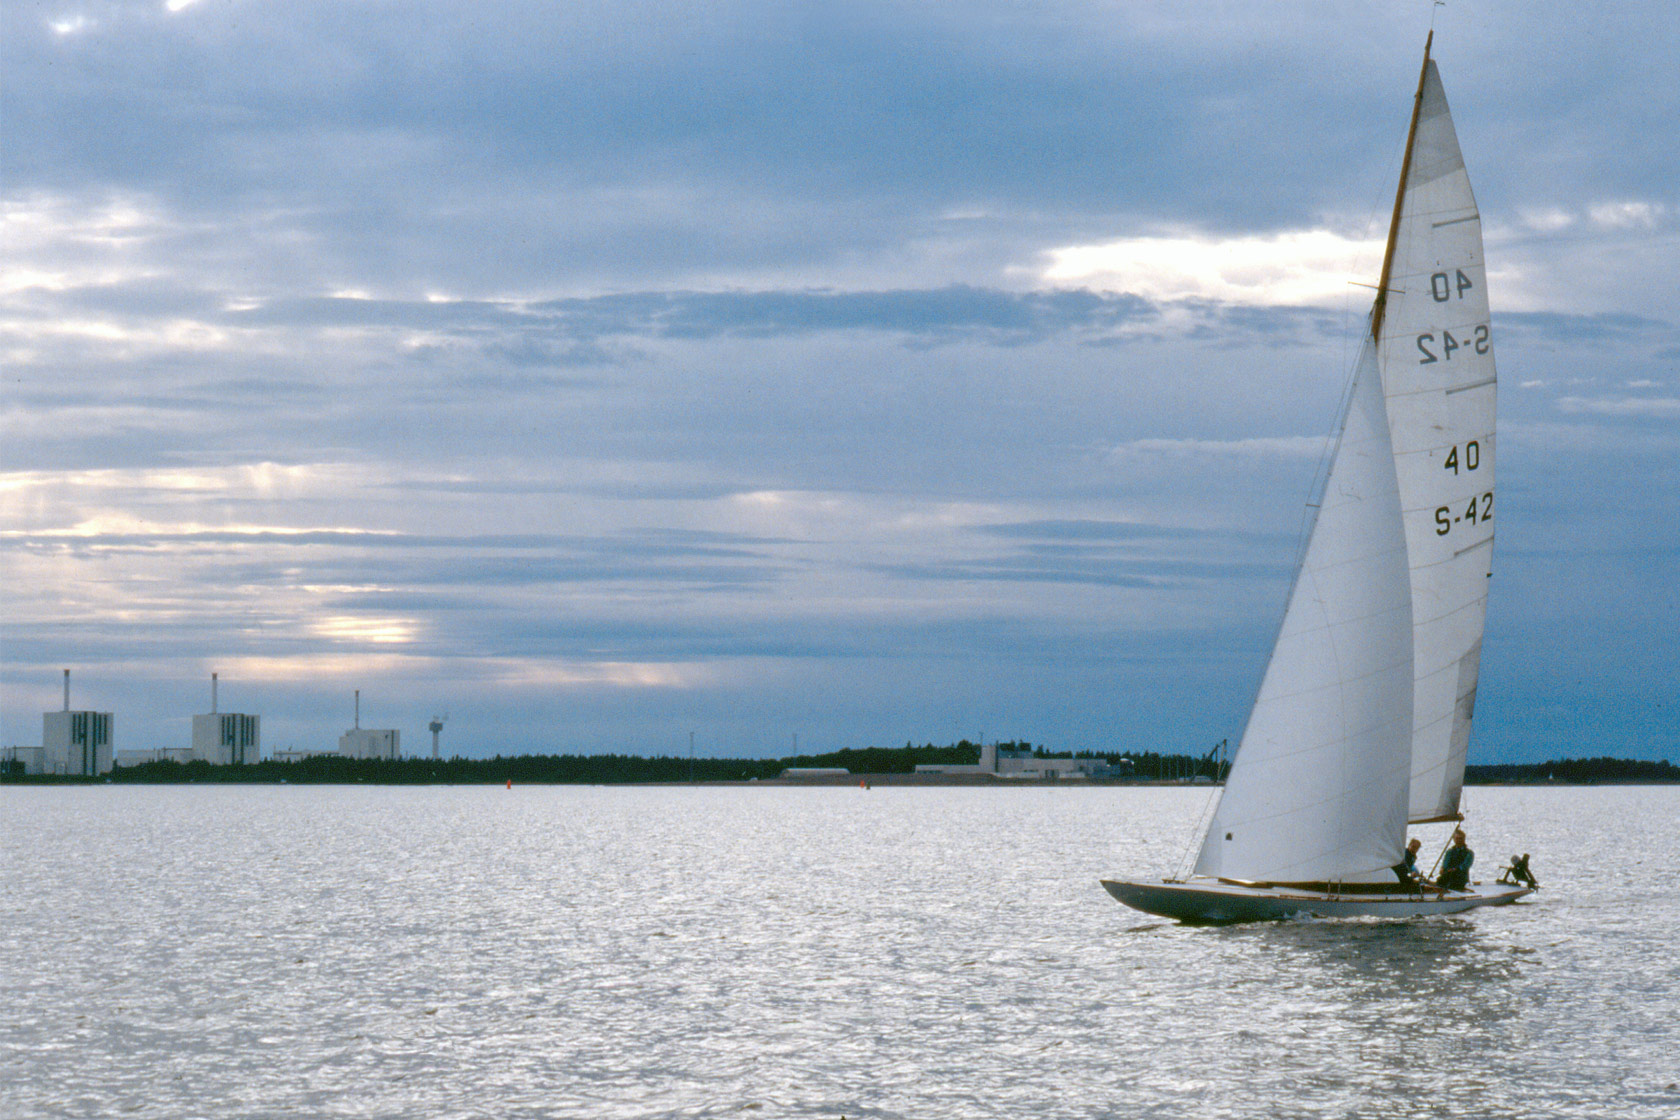 A sail boat at sea outside Forsmark